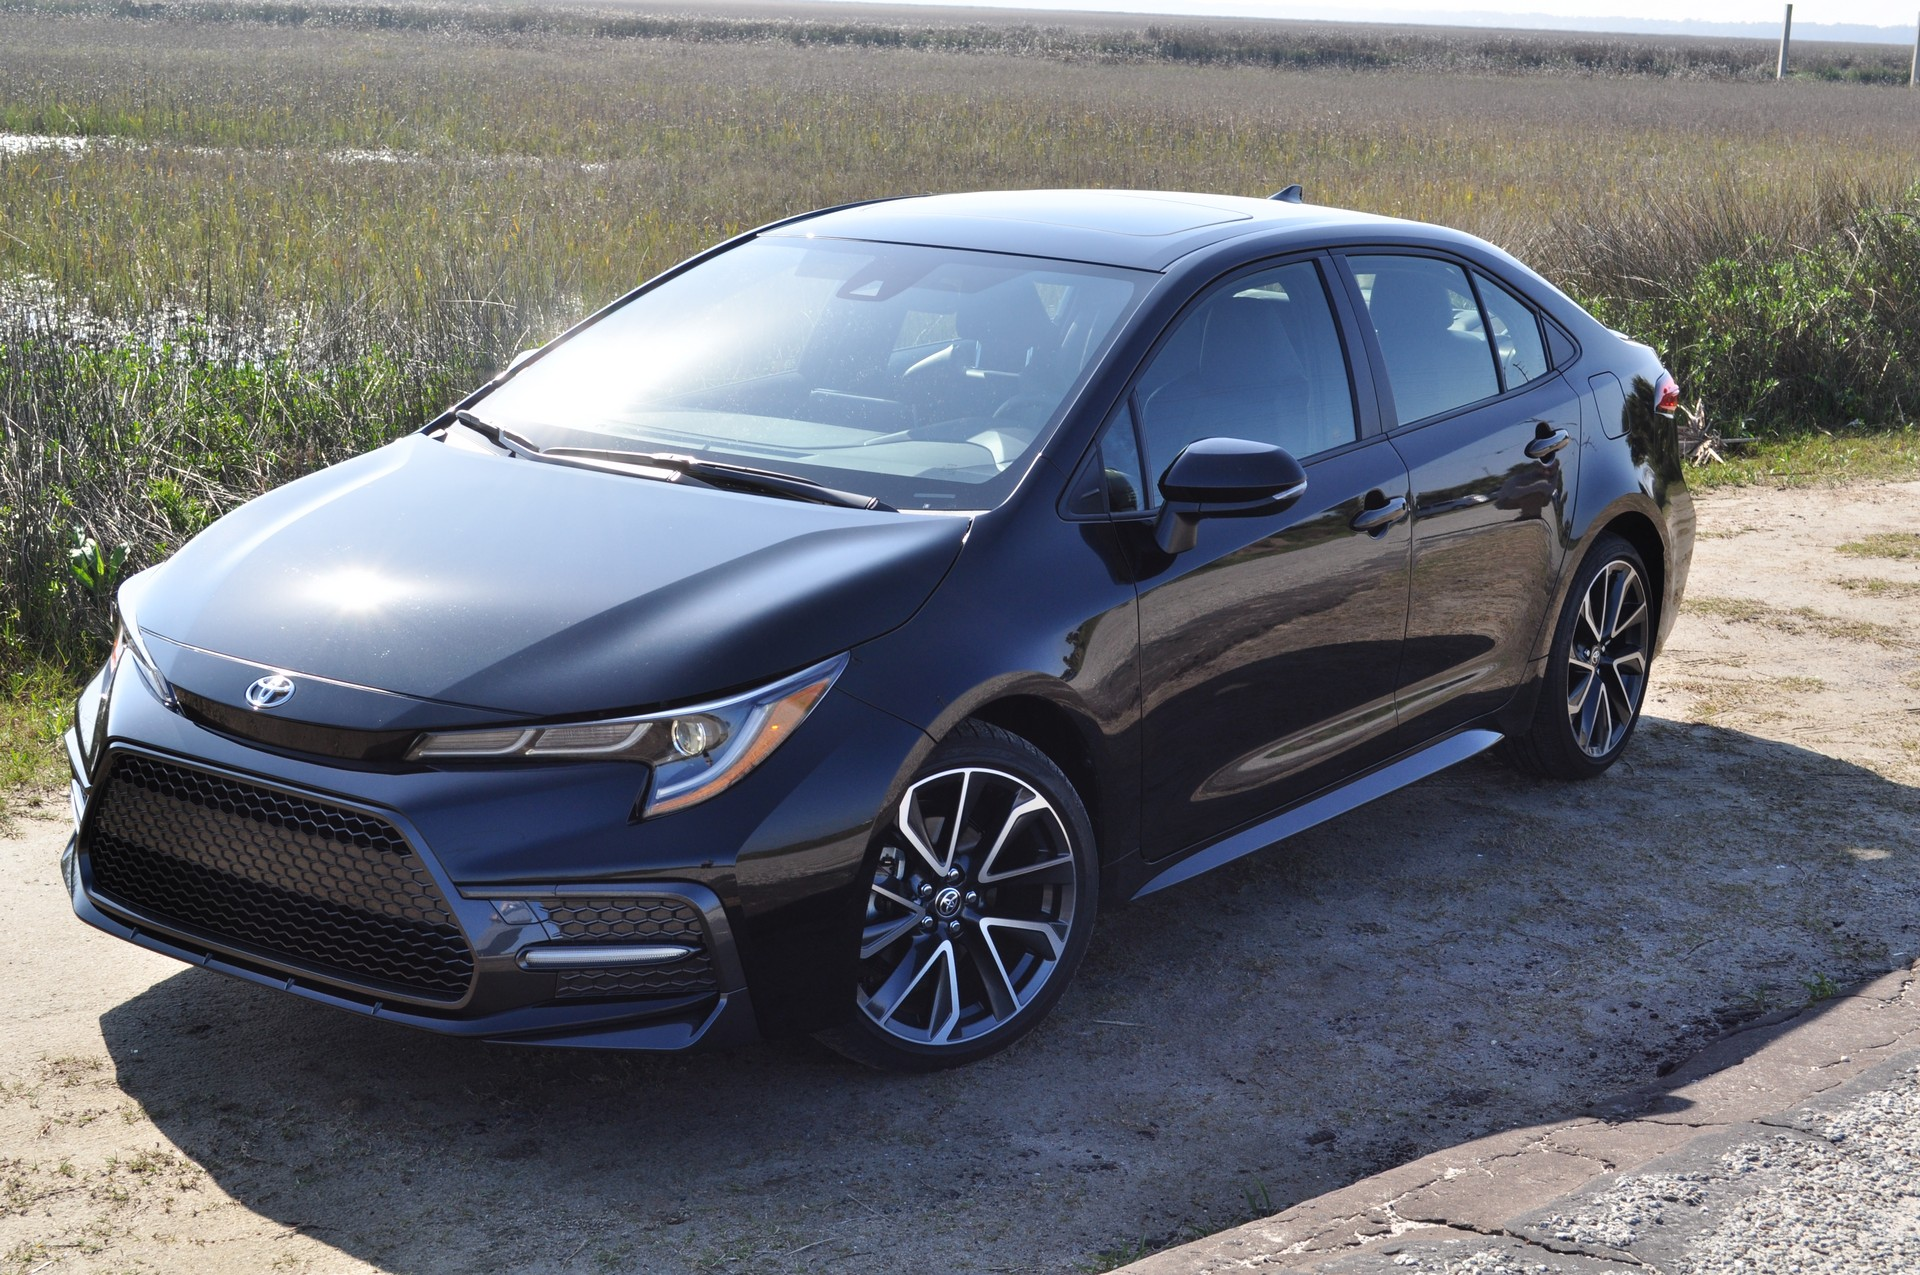 Driven: 2020 Toyota Corolla Wants To Shake Its Boring